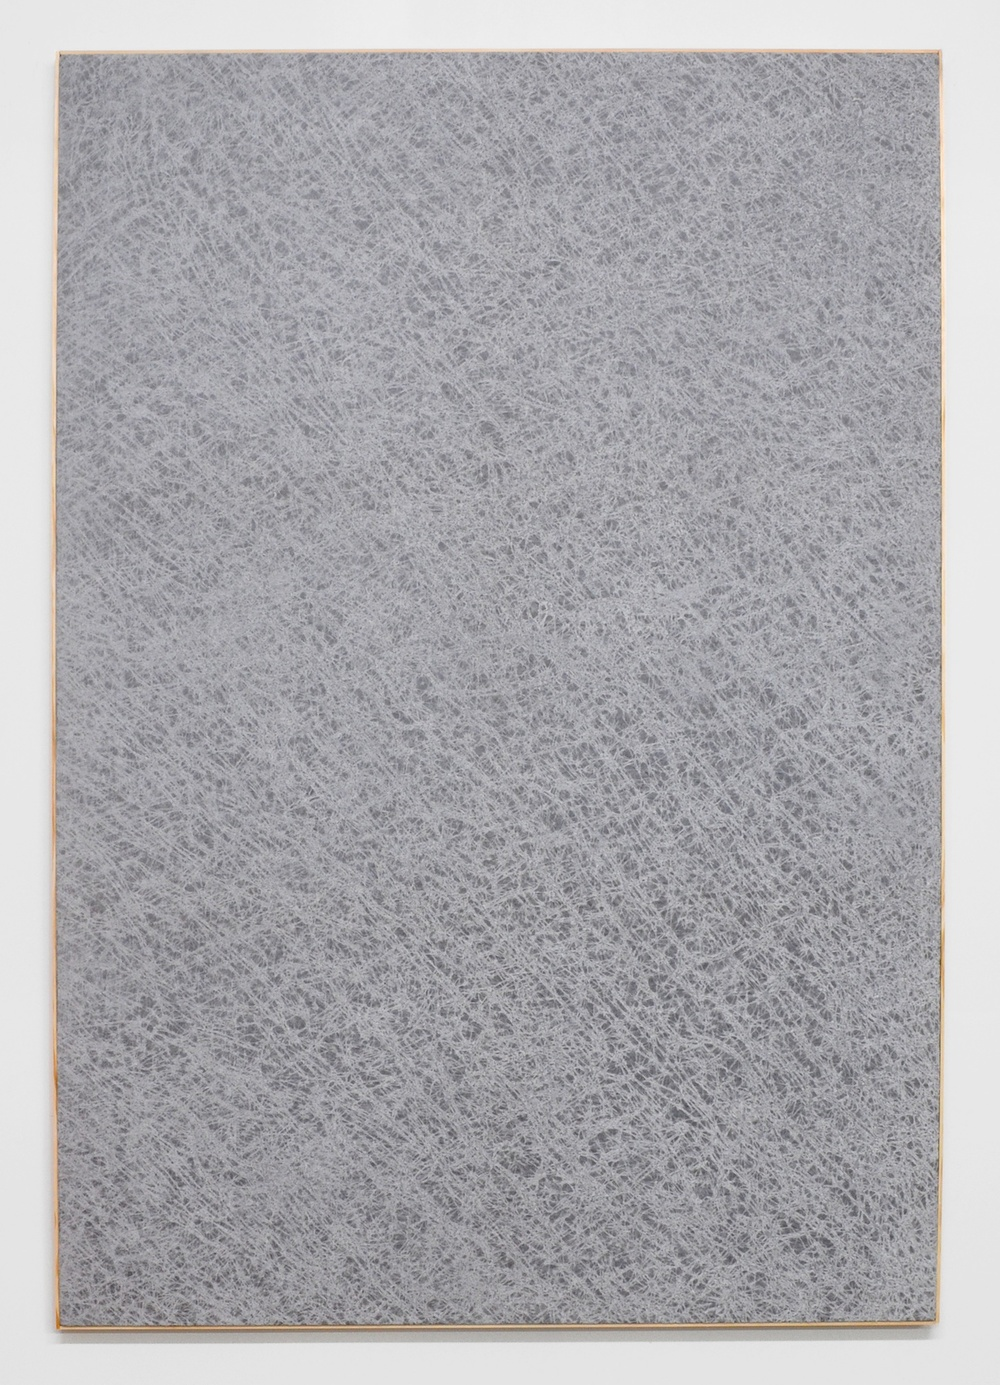 Jessica Sanders  Crumple A37,  2014 Beeswax on stretched linen with artist frame 72 ½ x 49 ½ in/ 184.2 x 125.7 cm